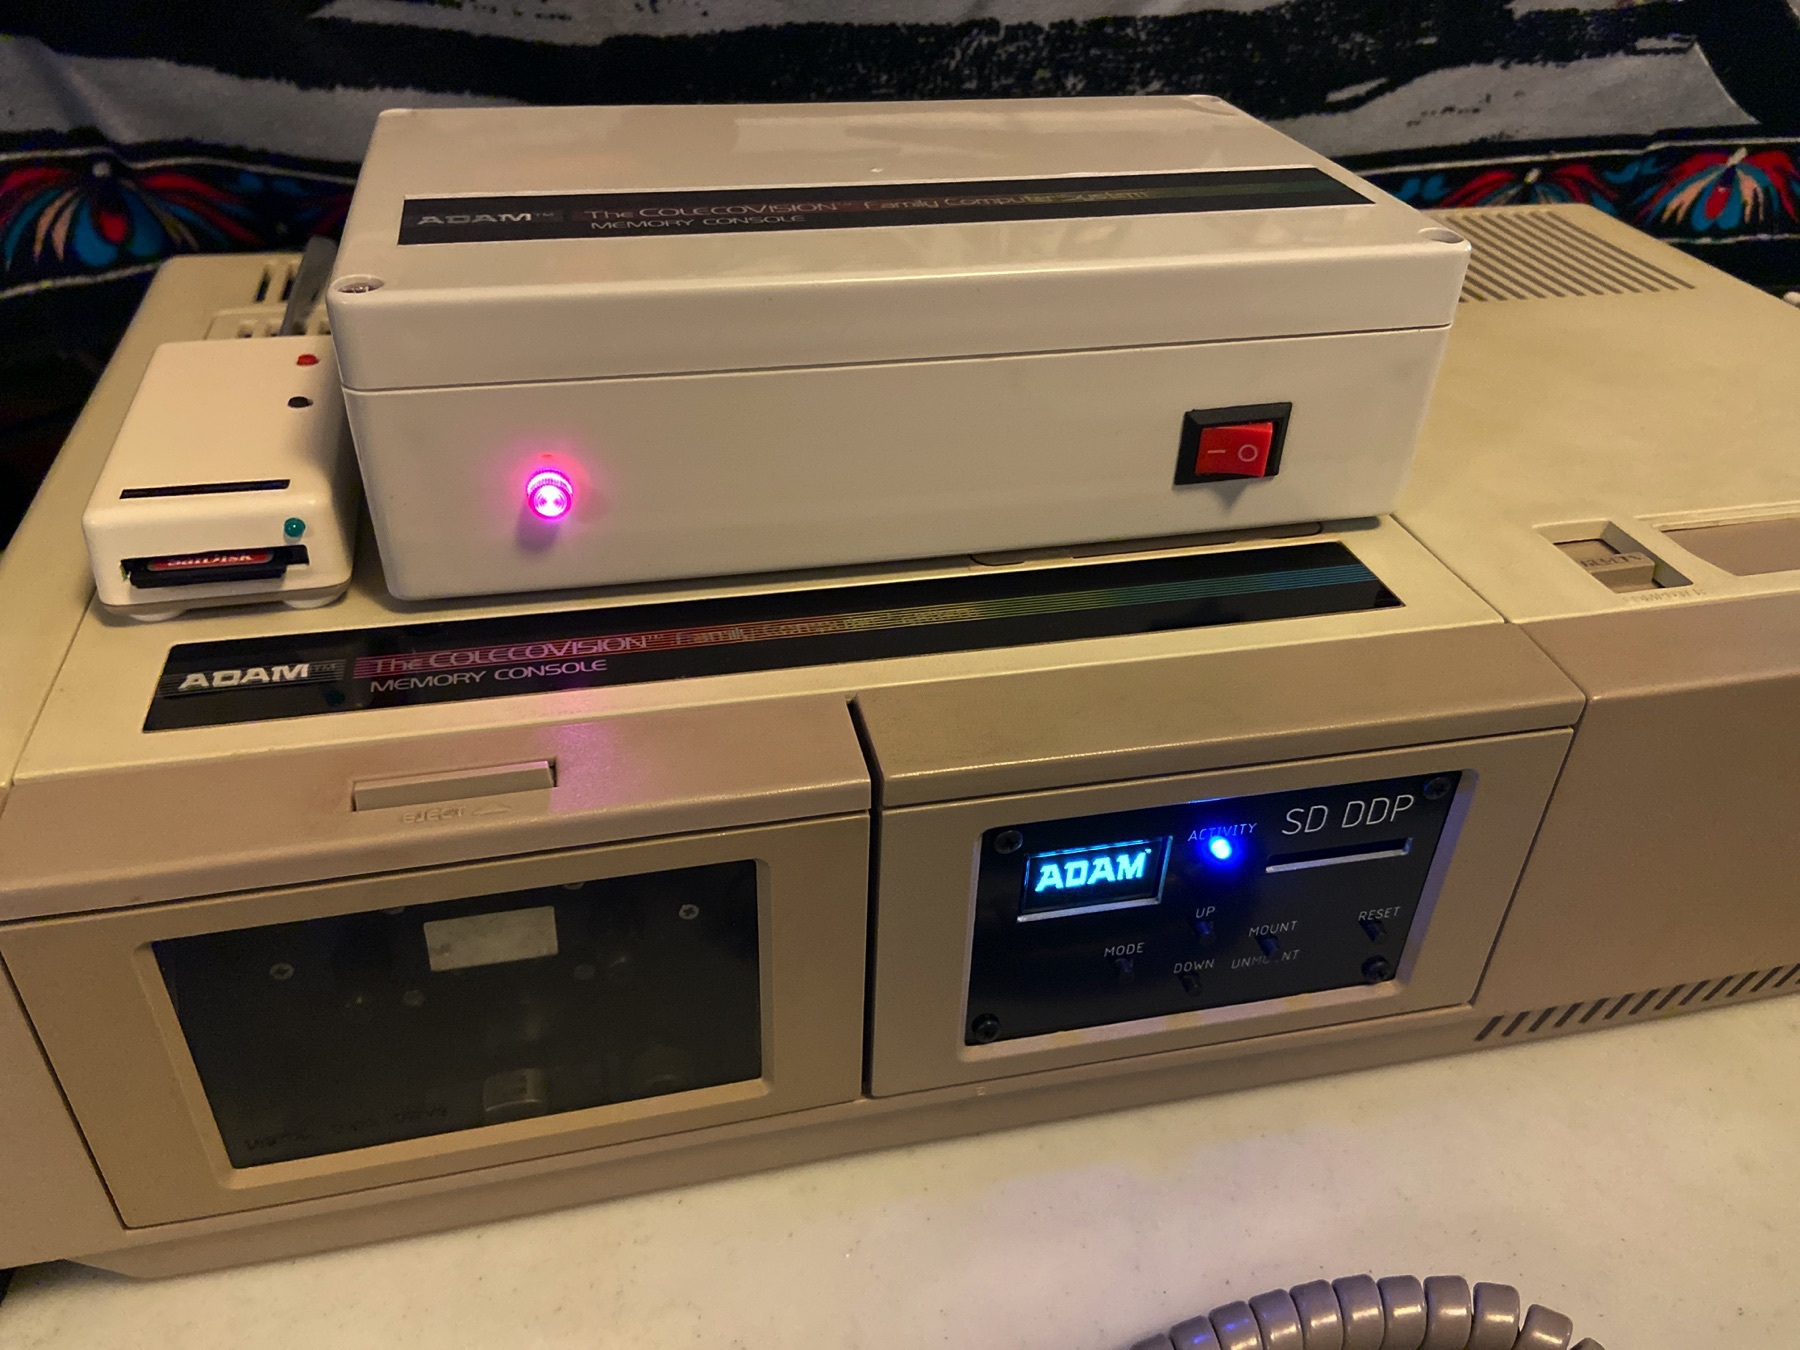 The power supply and SD-DDP fully integrated into my ADAM system! Also pictured is my ADE Lite drive.